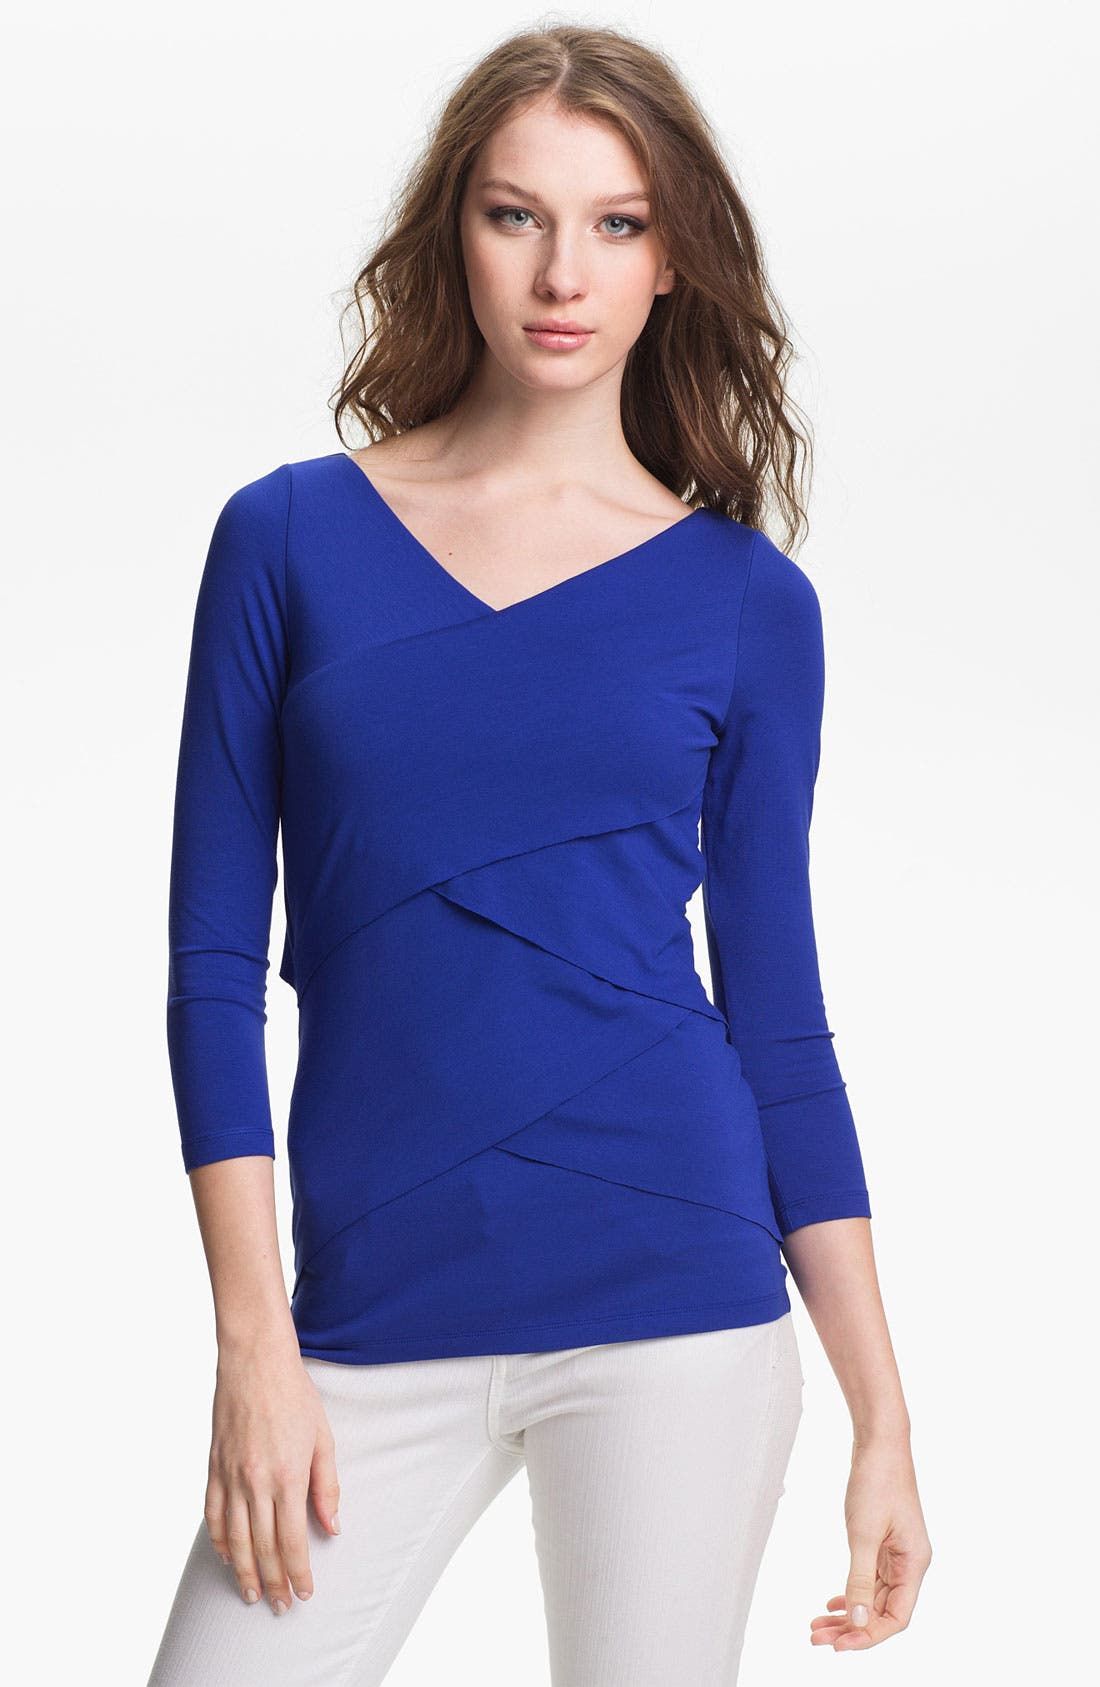 Main Image - Vince Camuto Three Quarter Sleeve Bandage Top